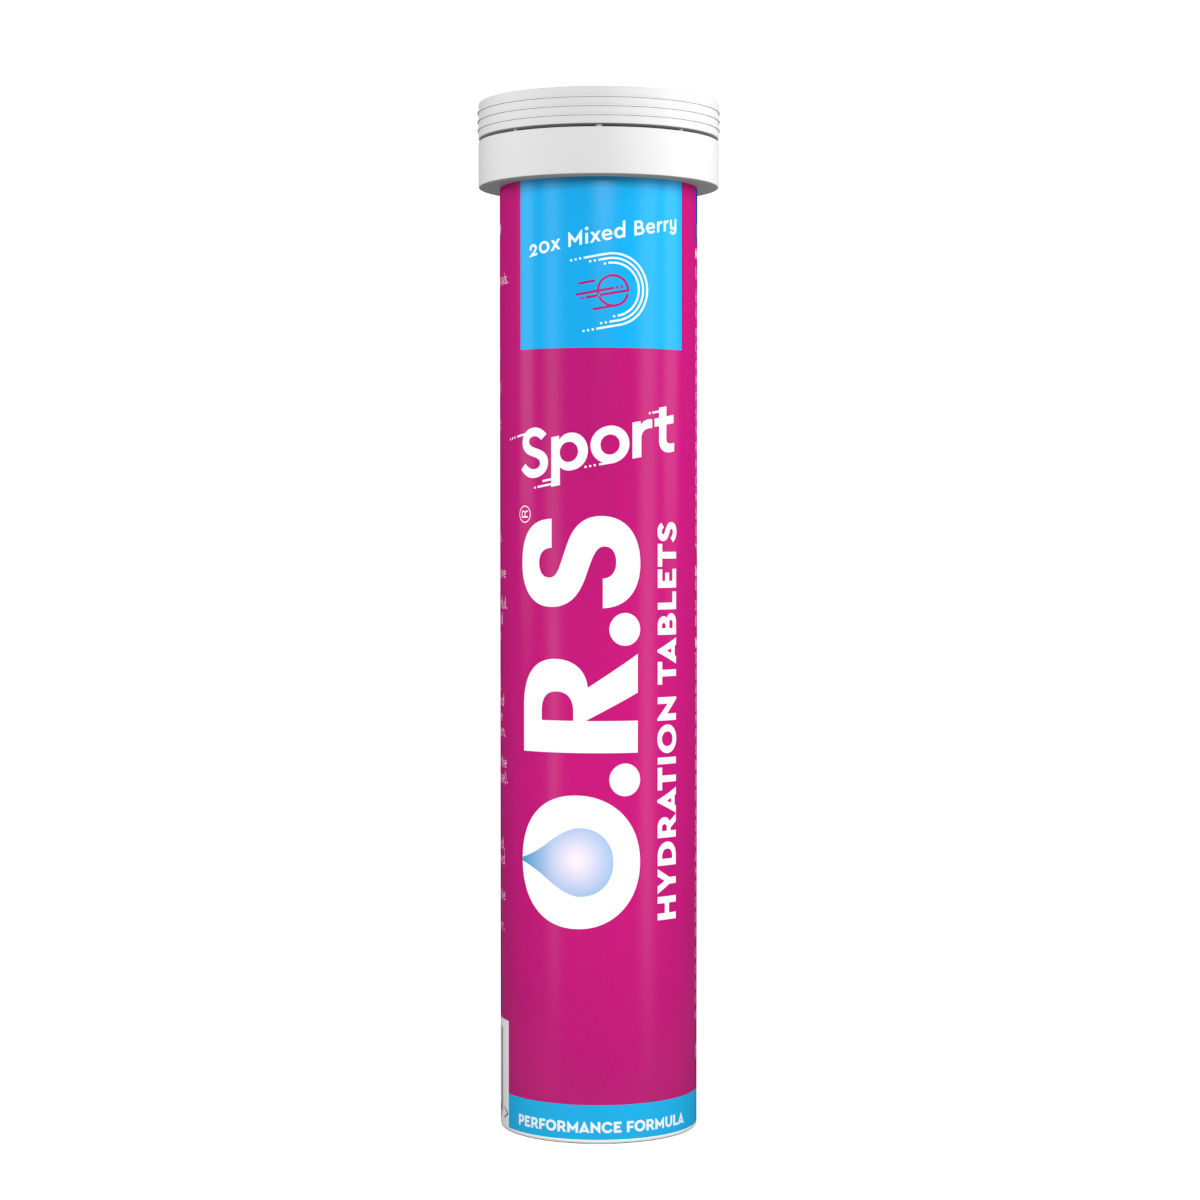 O.r.s Hydration Tabs (20 Tabs) - 21-40g Berry  Tabs